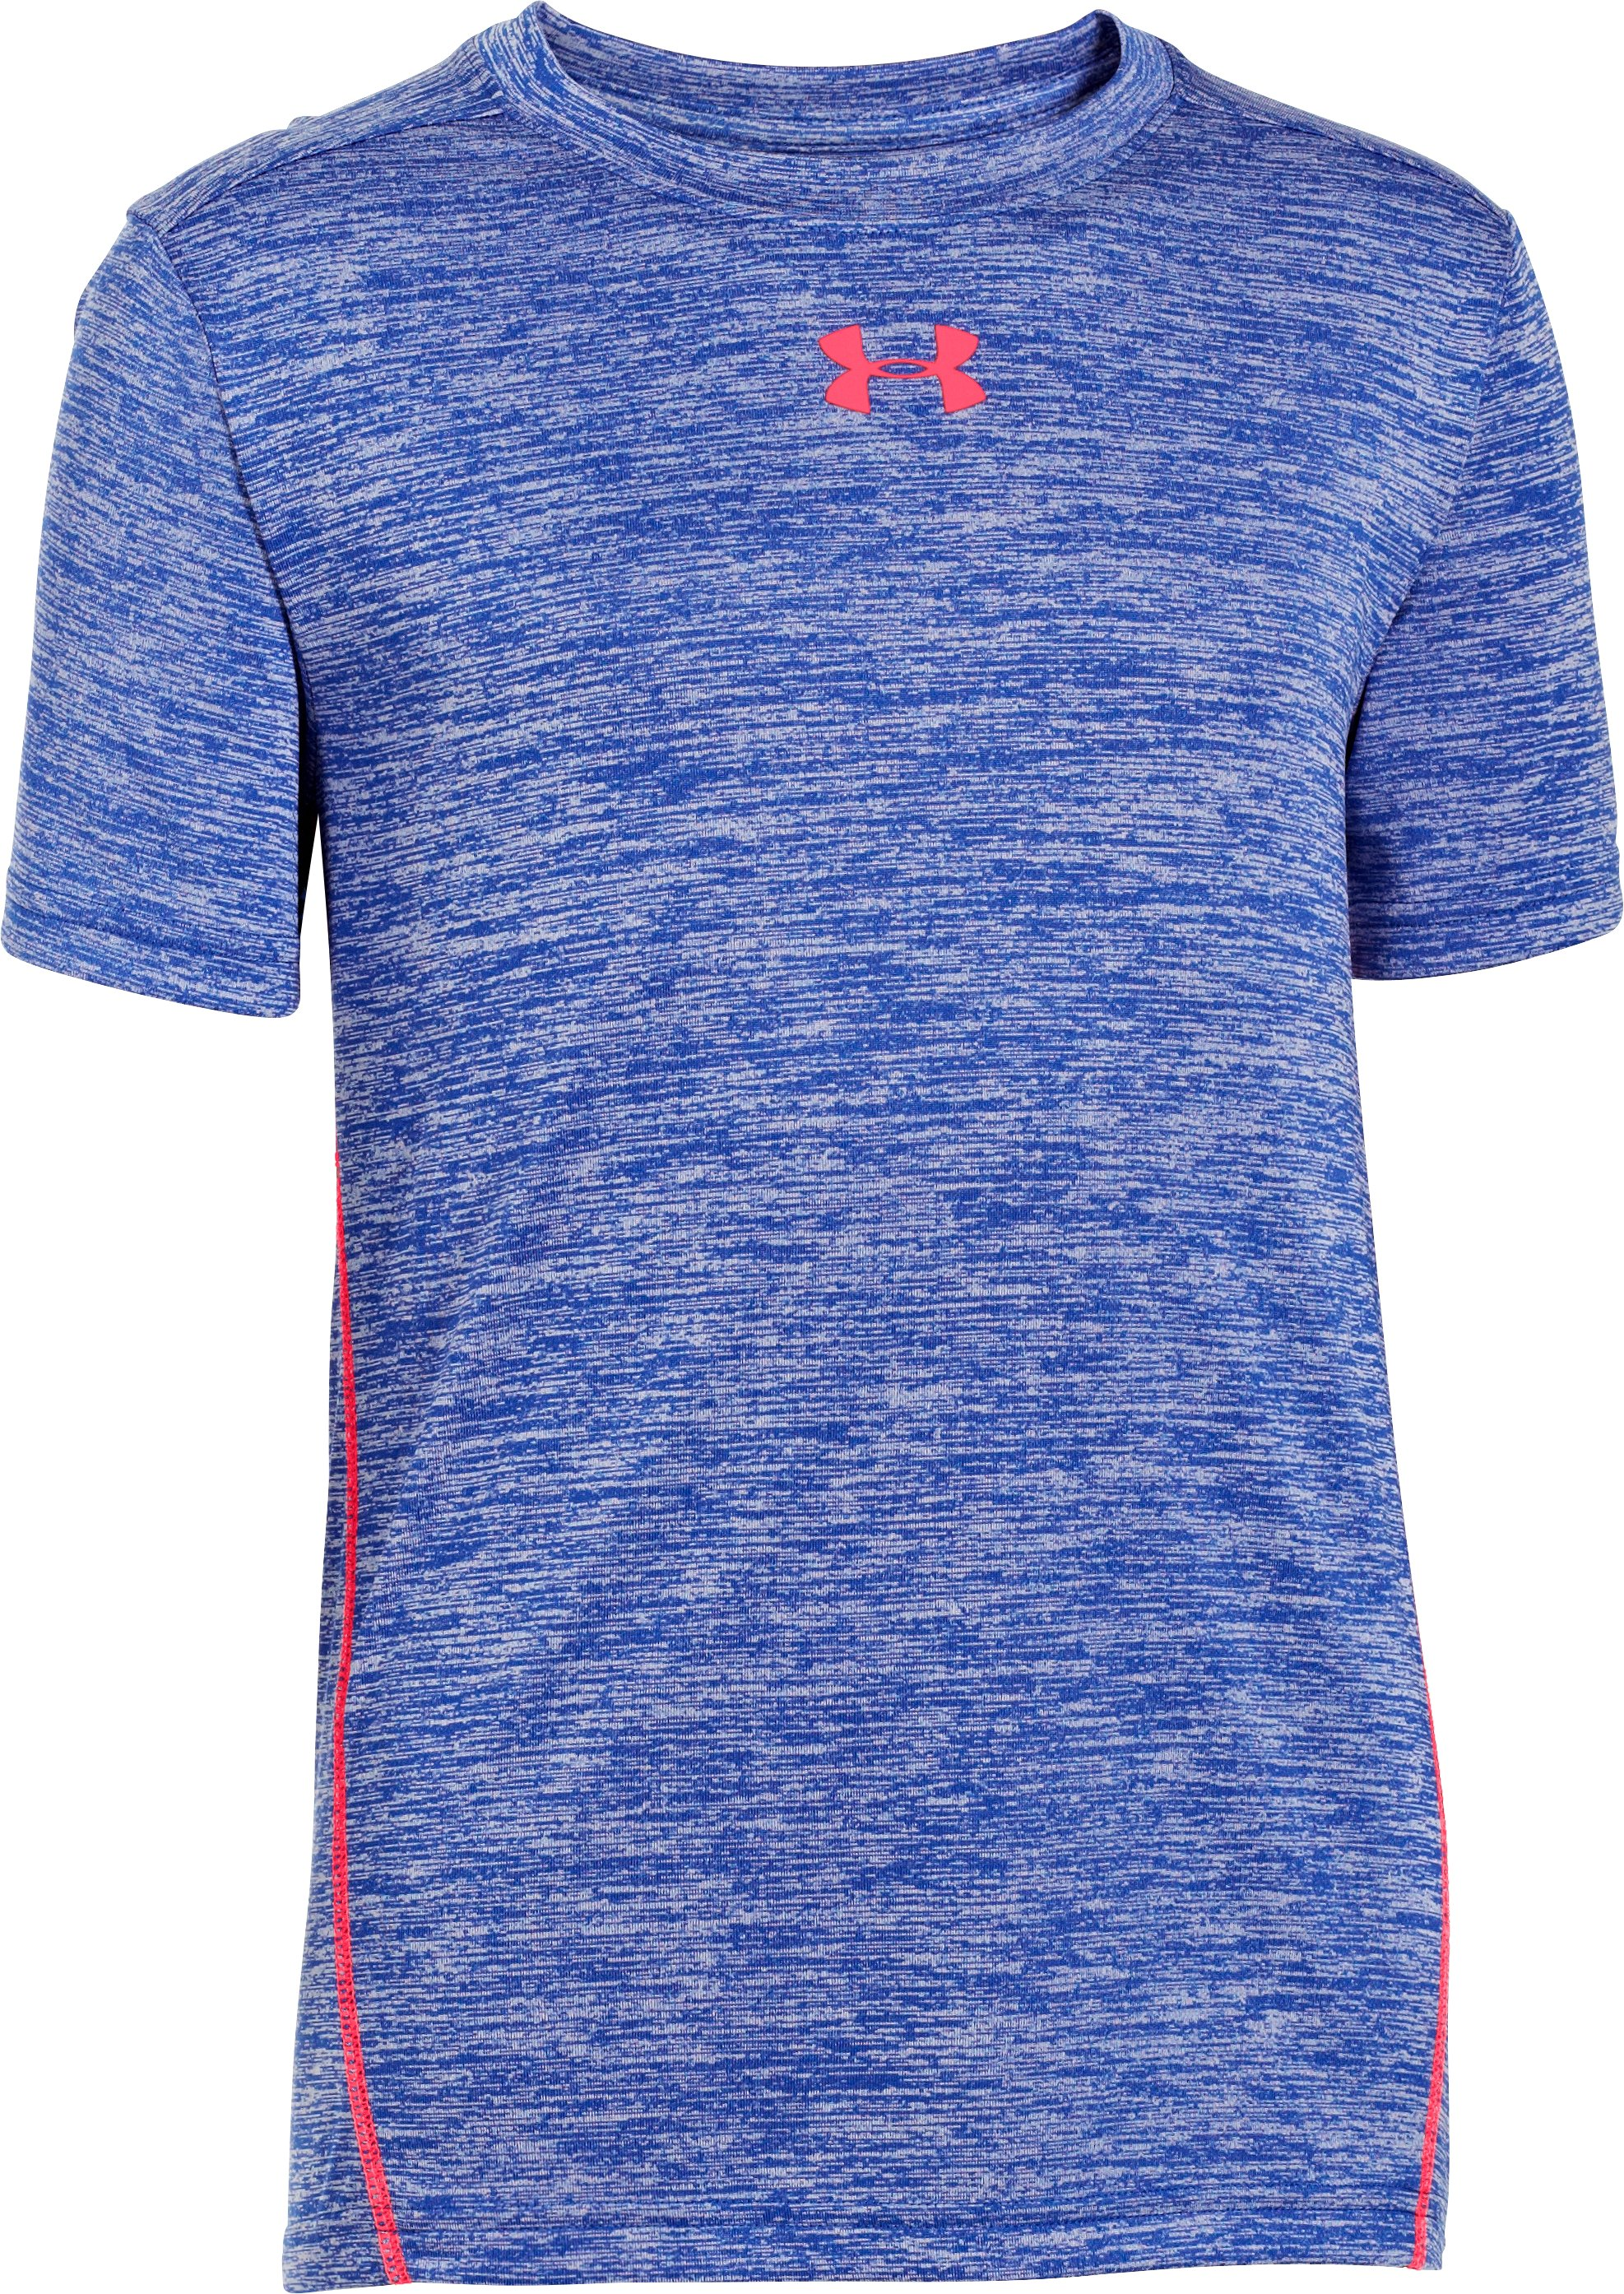 Boys' UA Tech™ Twist Short Sleeve T-Shirt, Royal